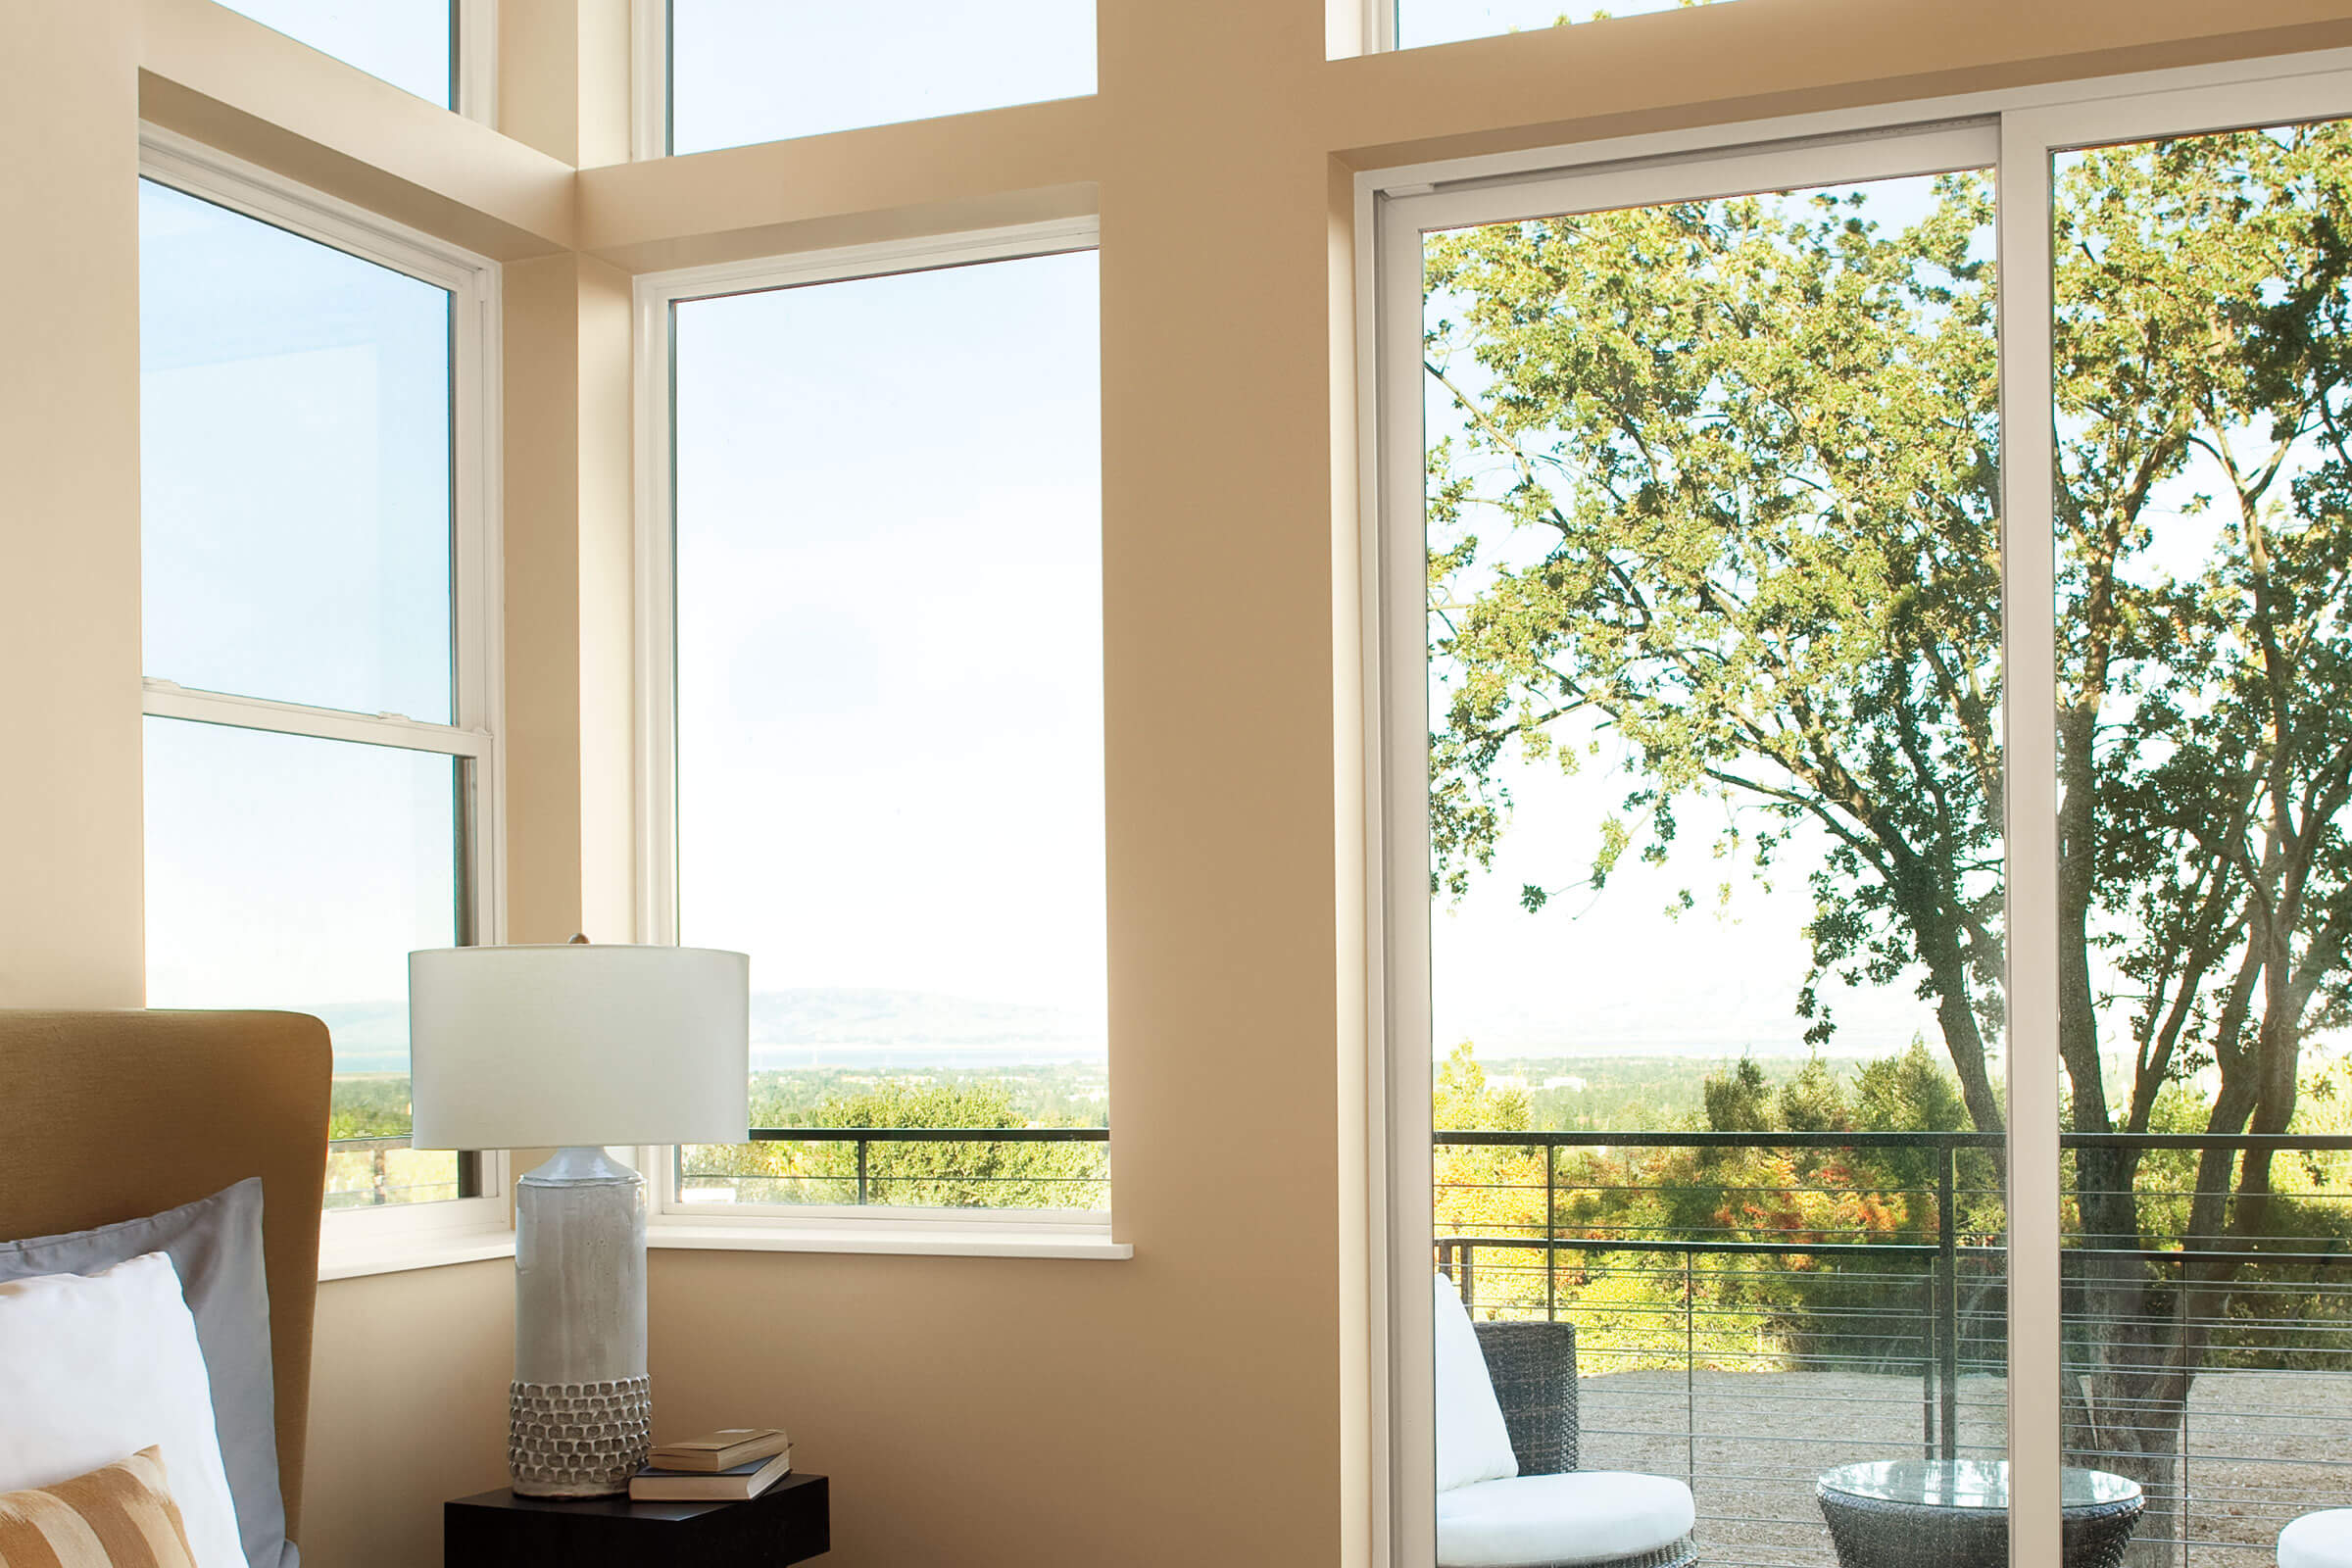 Sunny Room With View Through Marvin Essential Single Hung Window